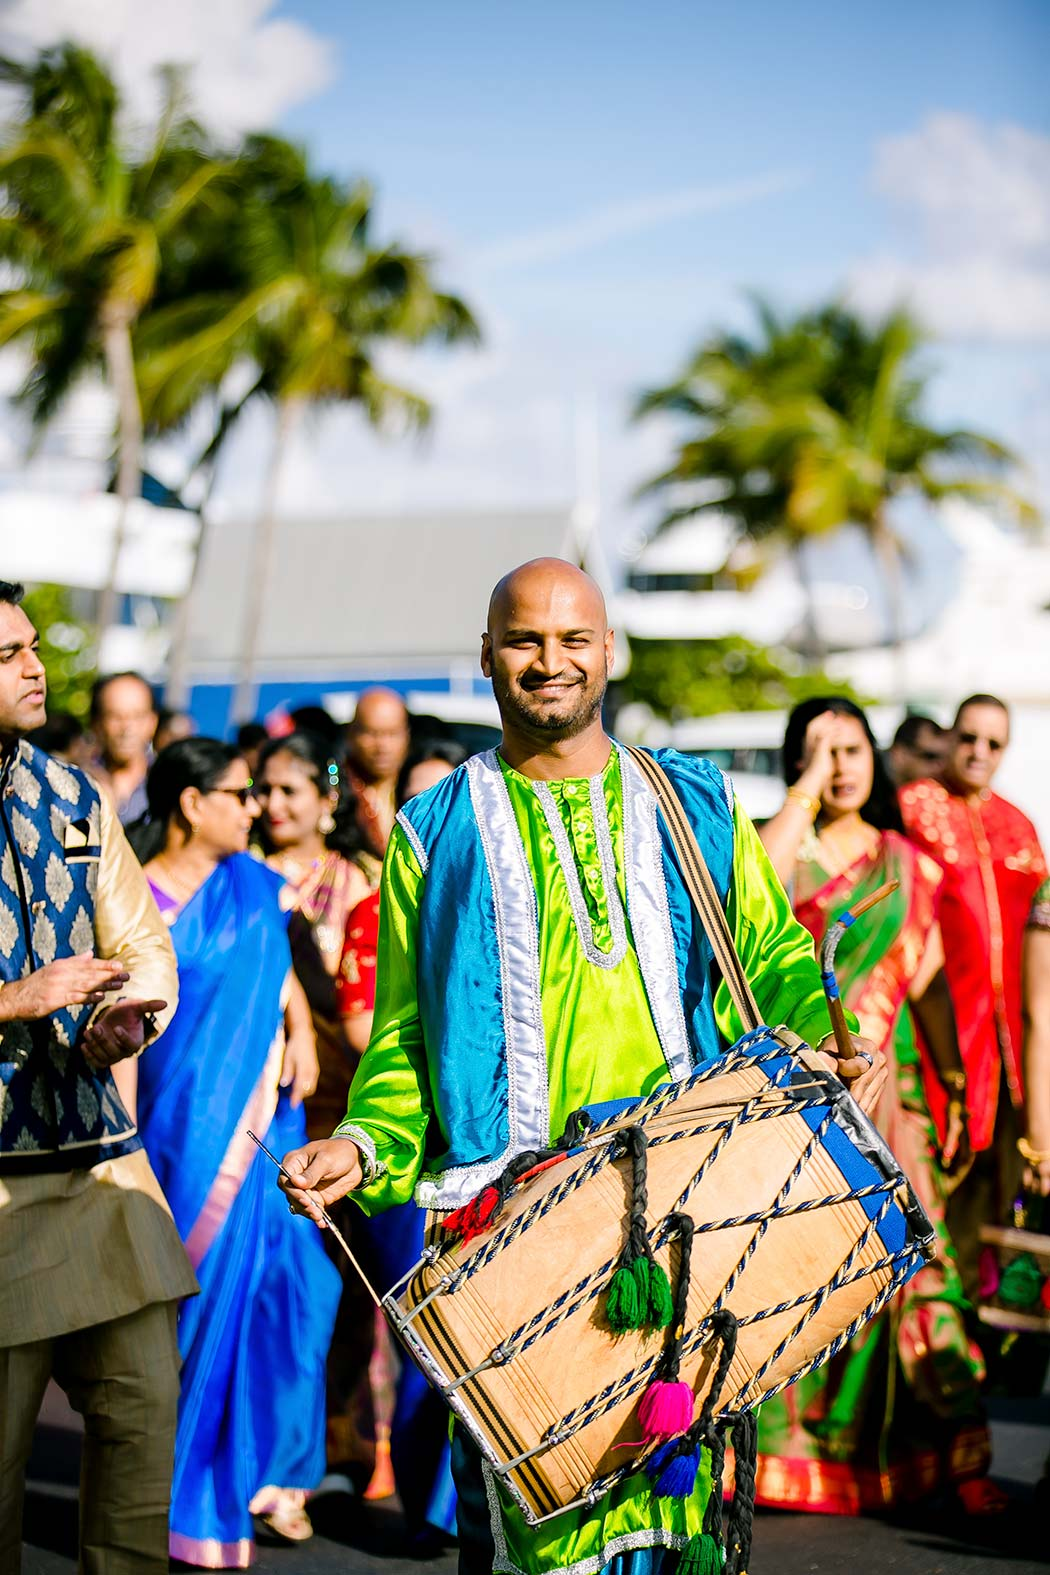 indian wedding procession with drummer | indian baraat photographs